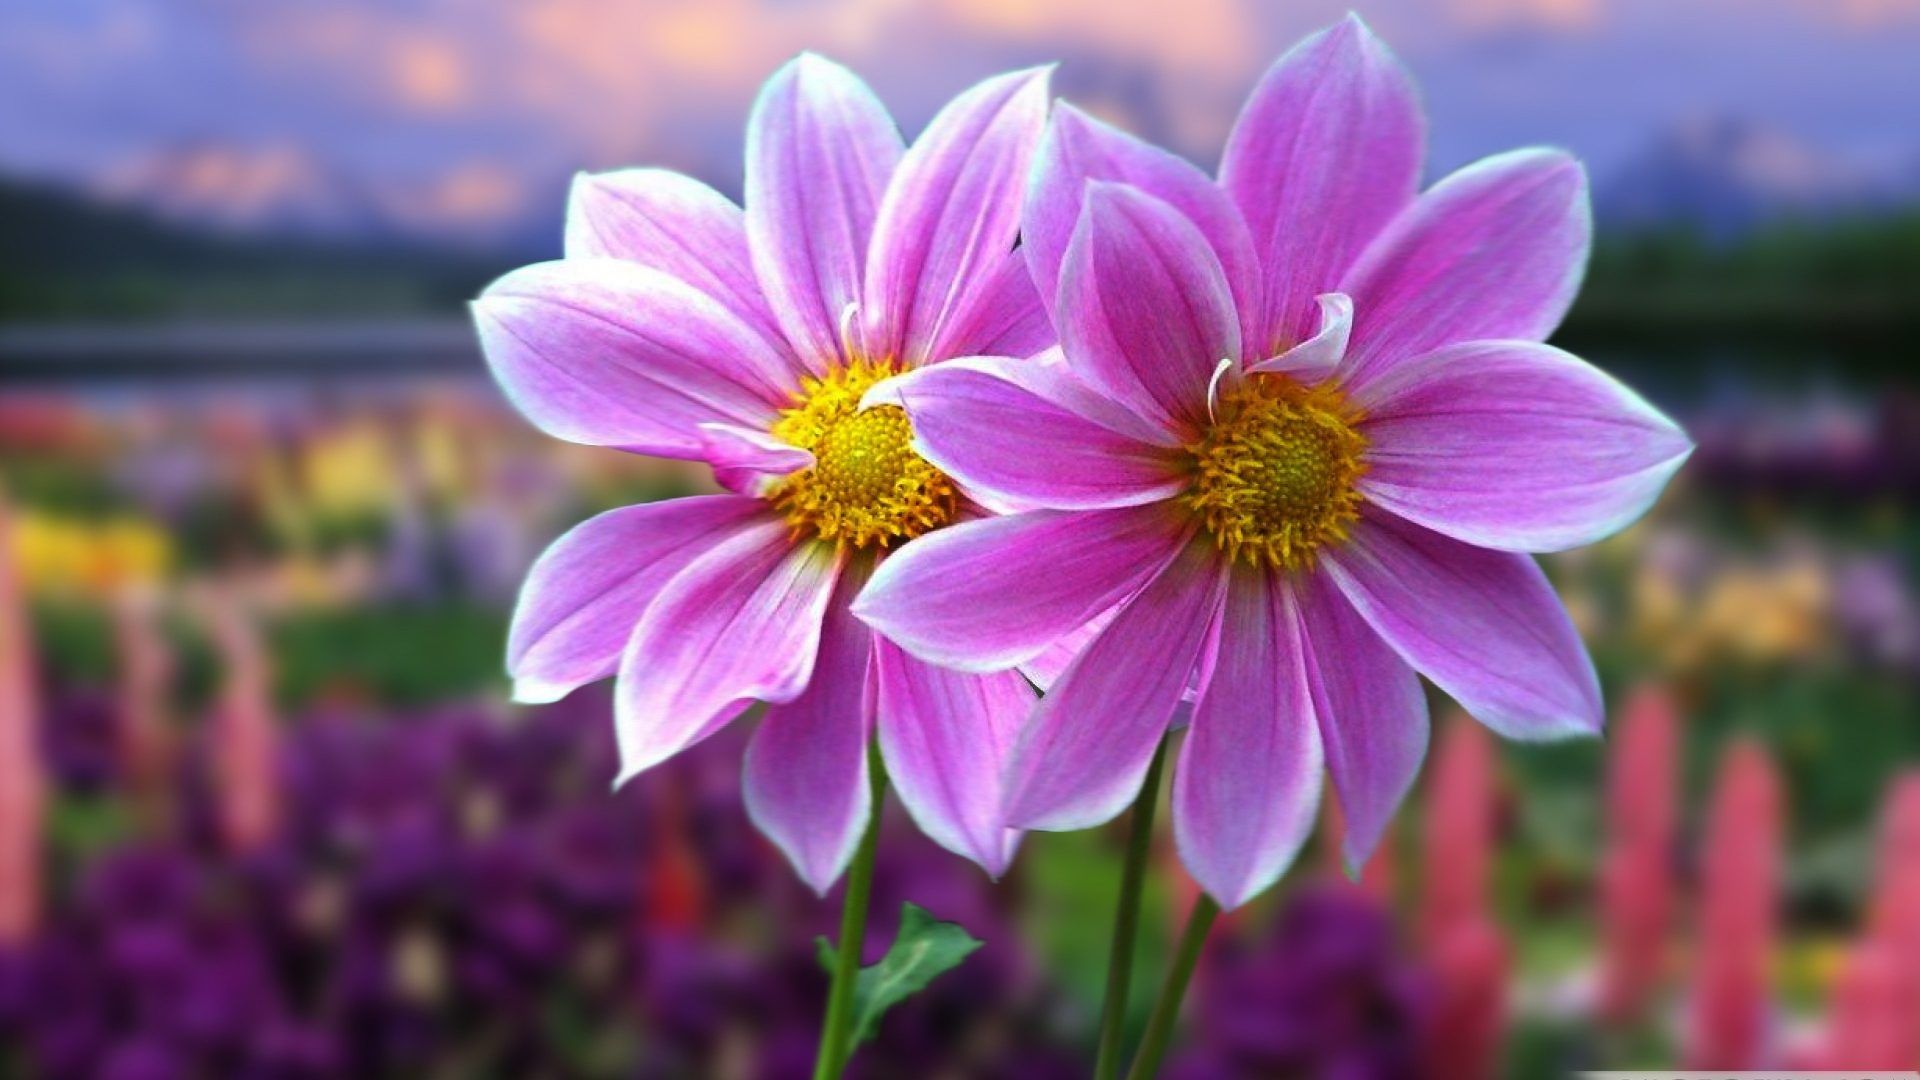 Most Beautiful Flower wallpaper for laptop